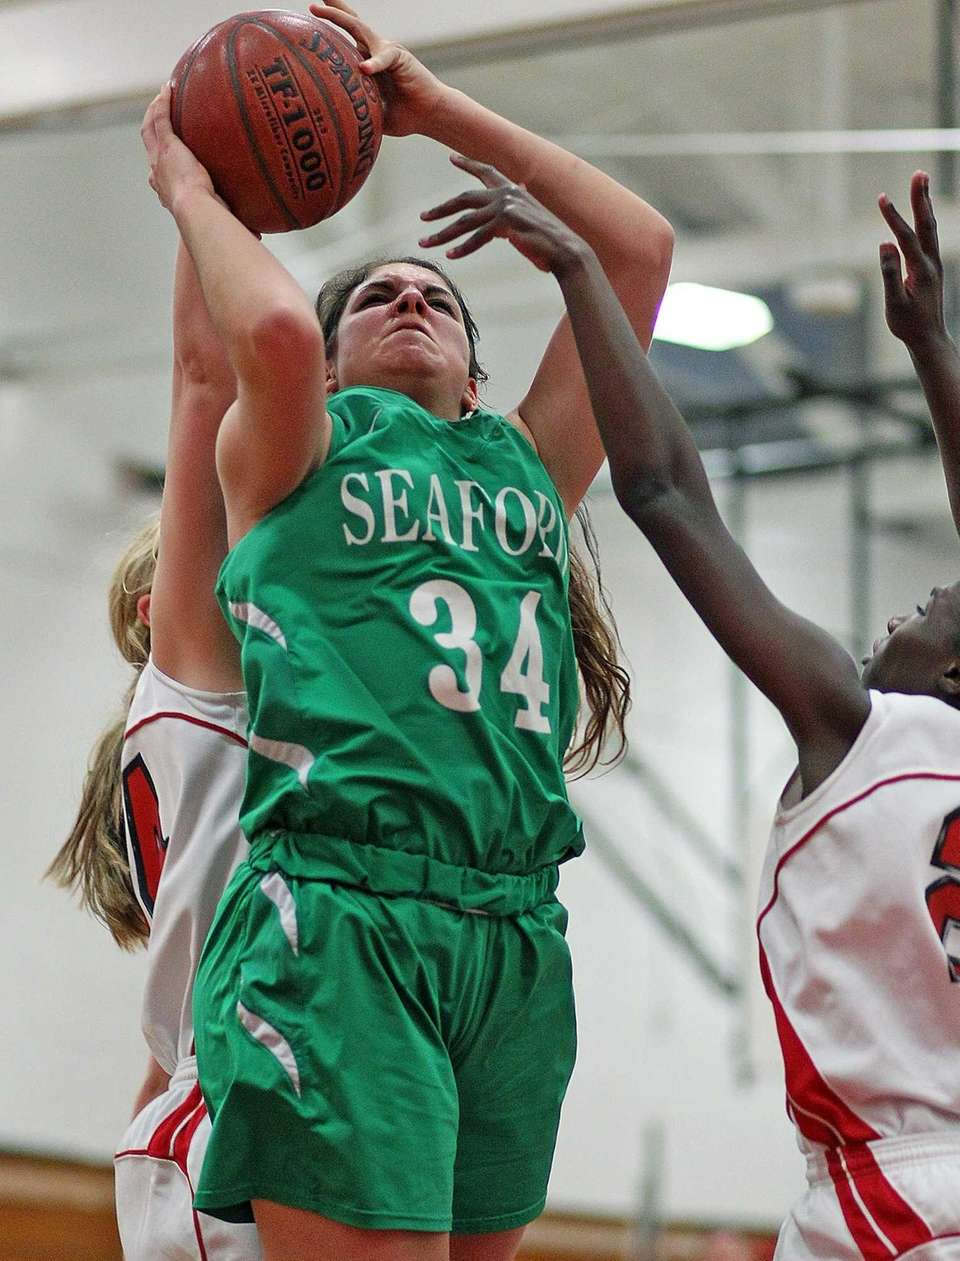 Seaford's Jessica Rini has a tough time inside.